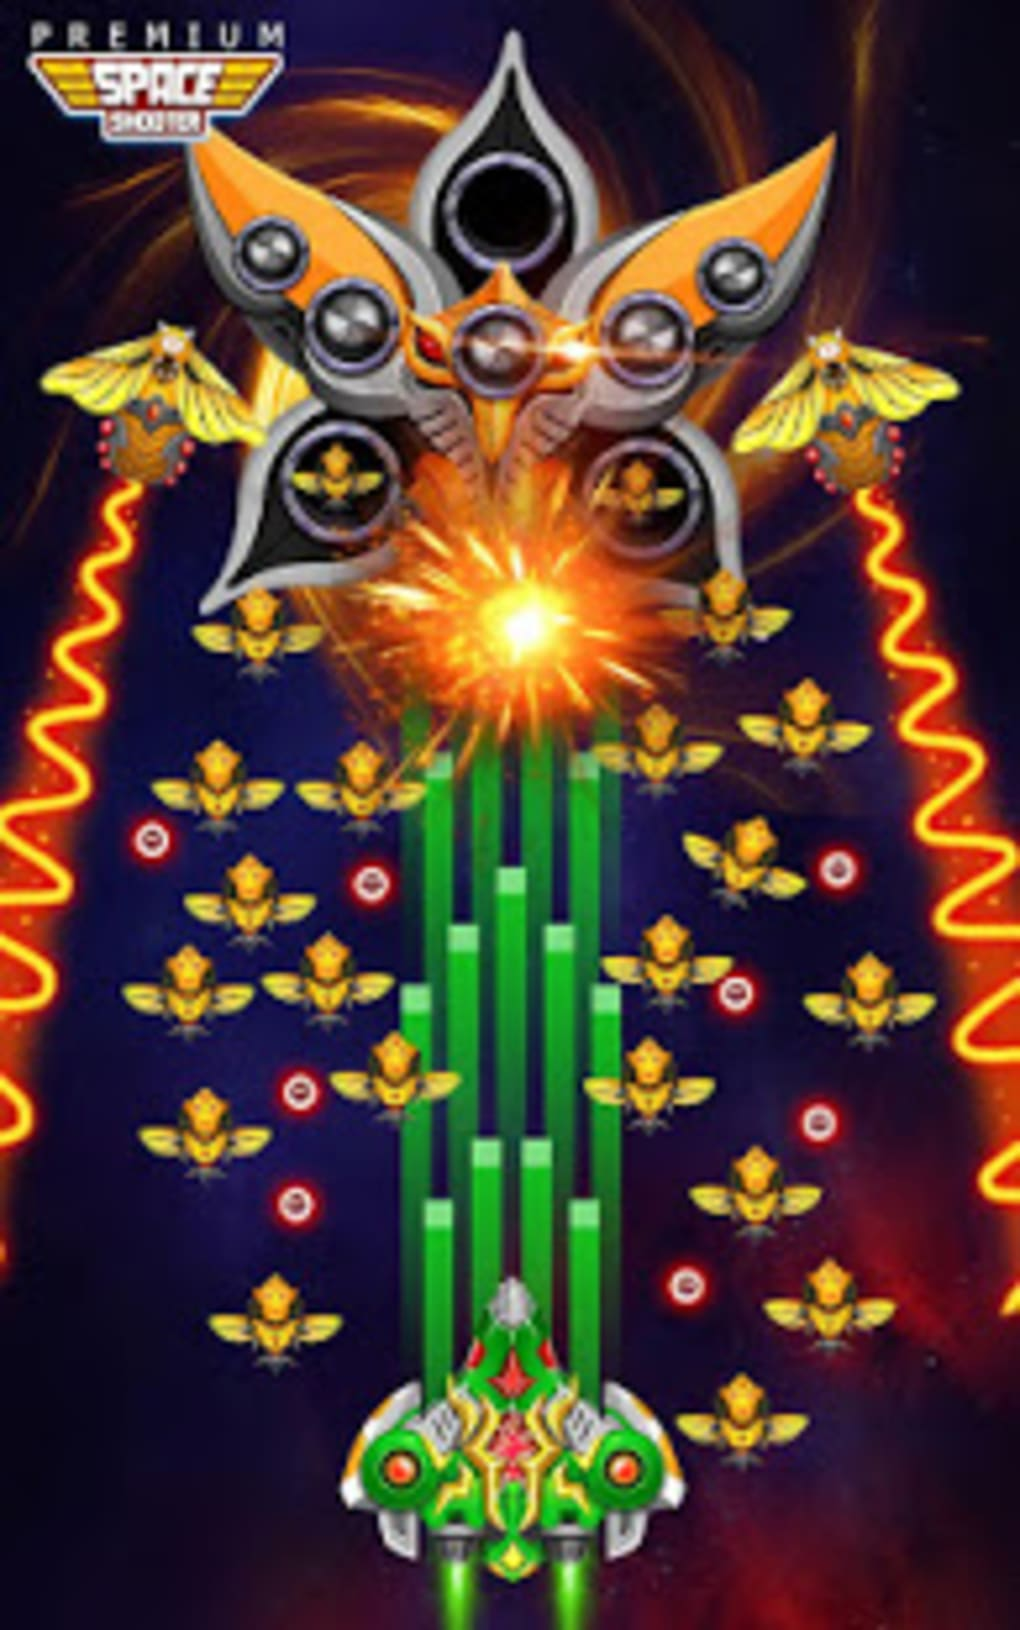 Space Shooter: Galaxy Attack Premium for Android - Download